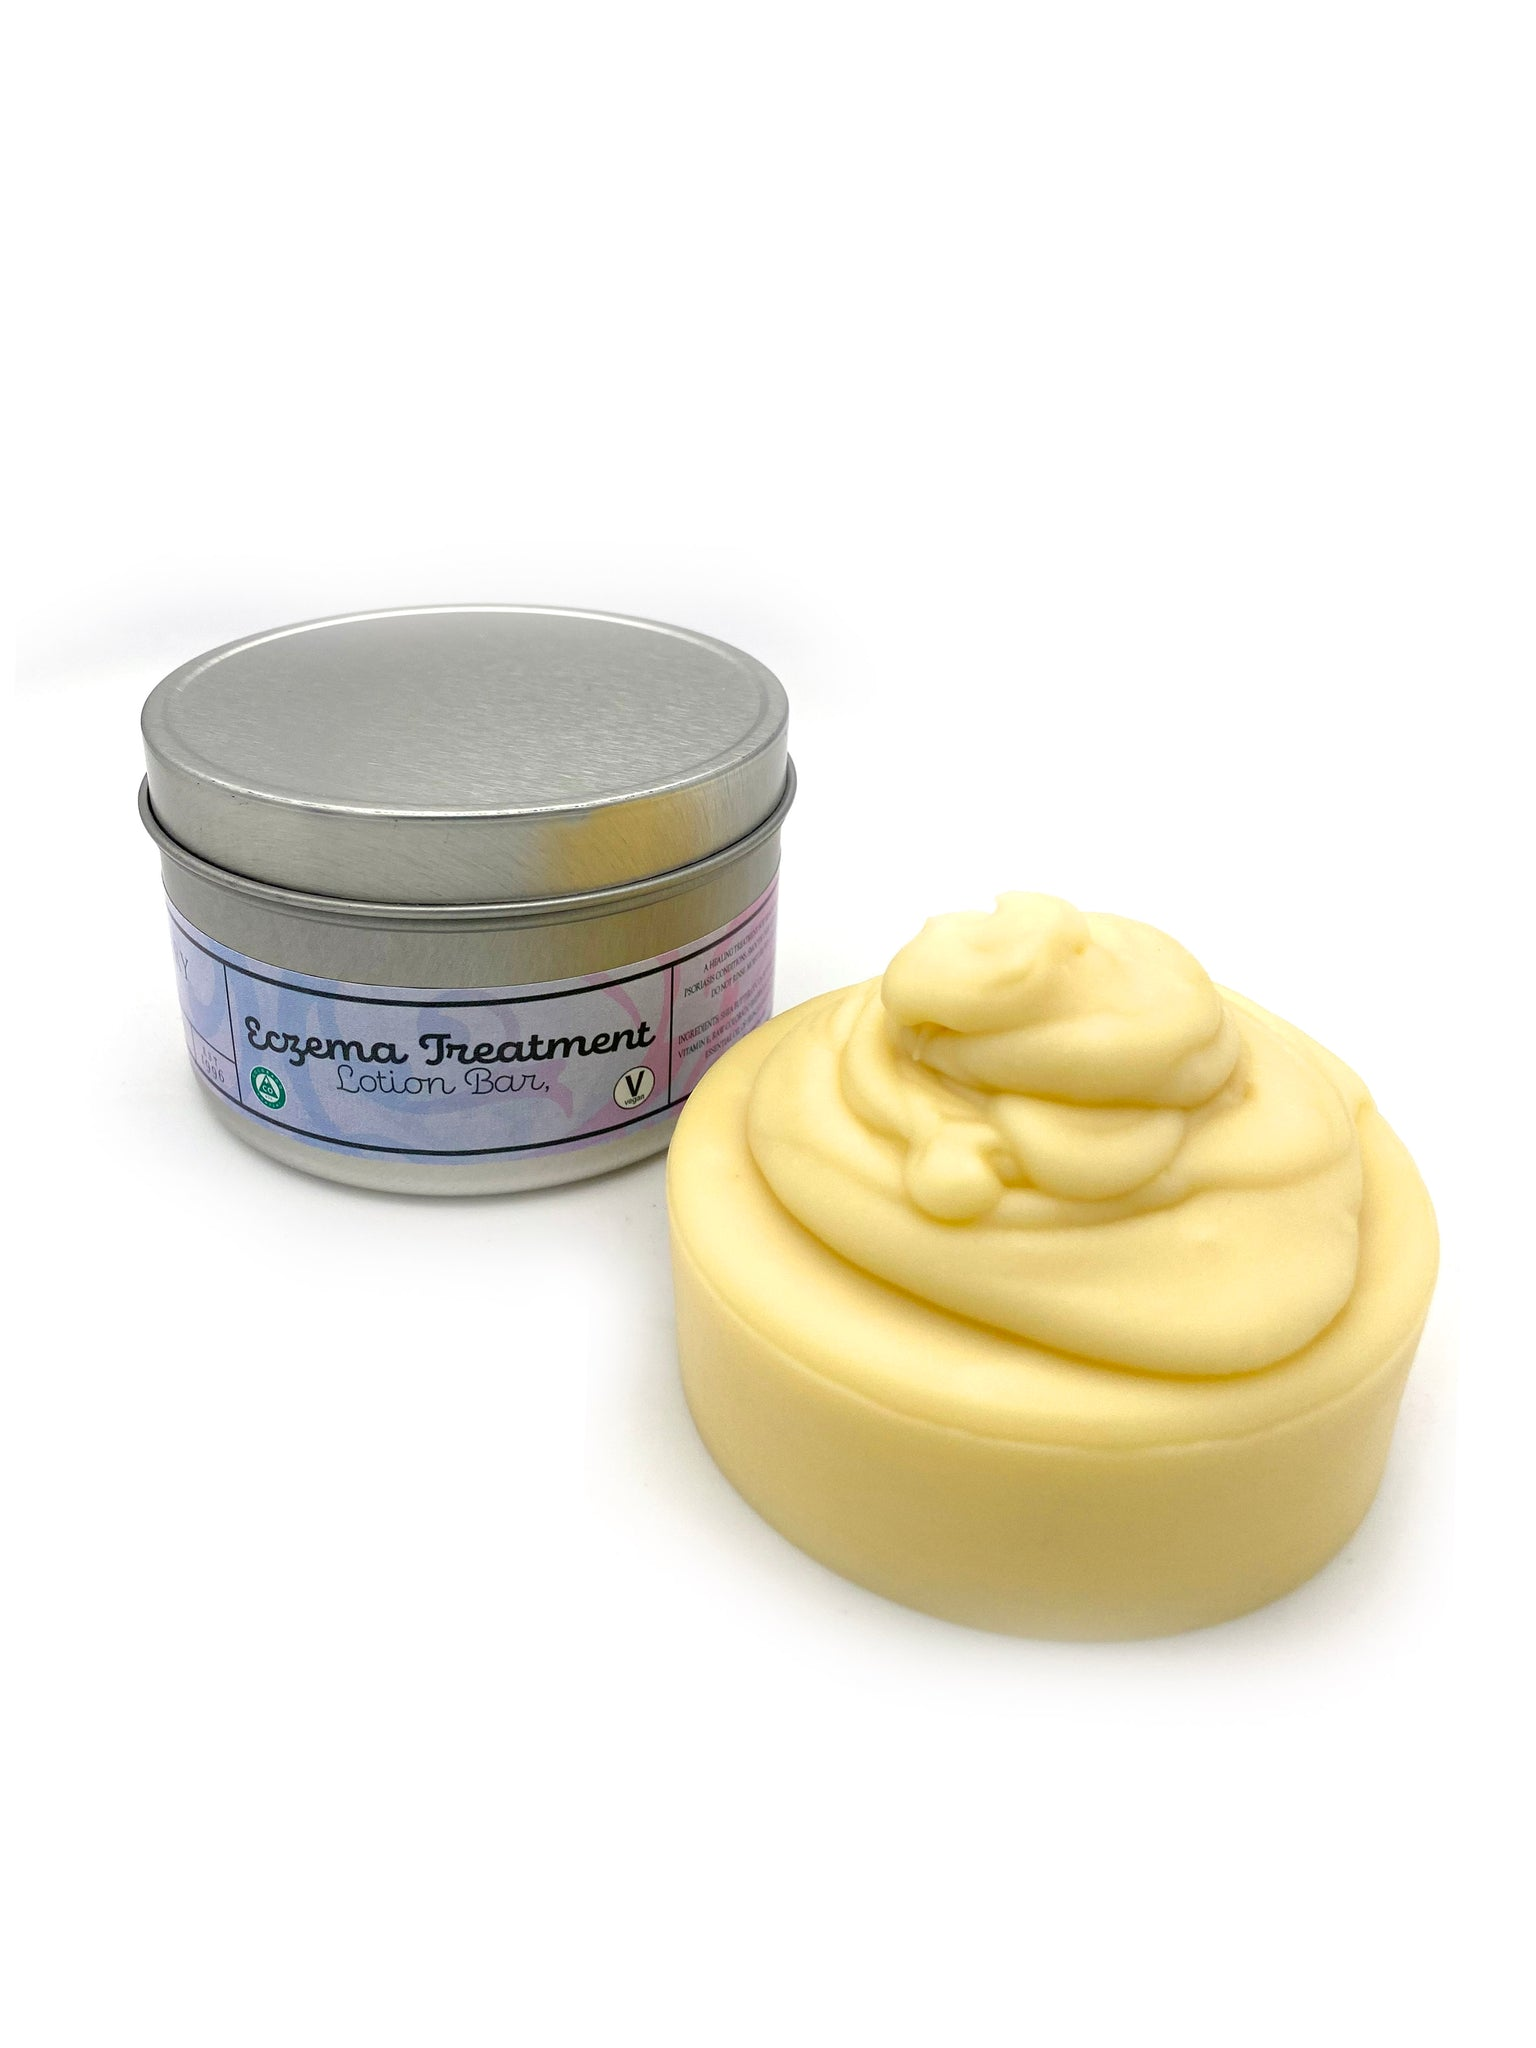 Eczema Treatment Lotion Bar 5oz - The Apothecary Fairy